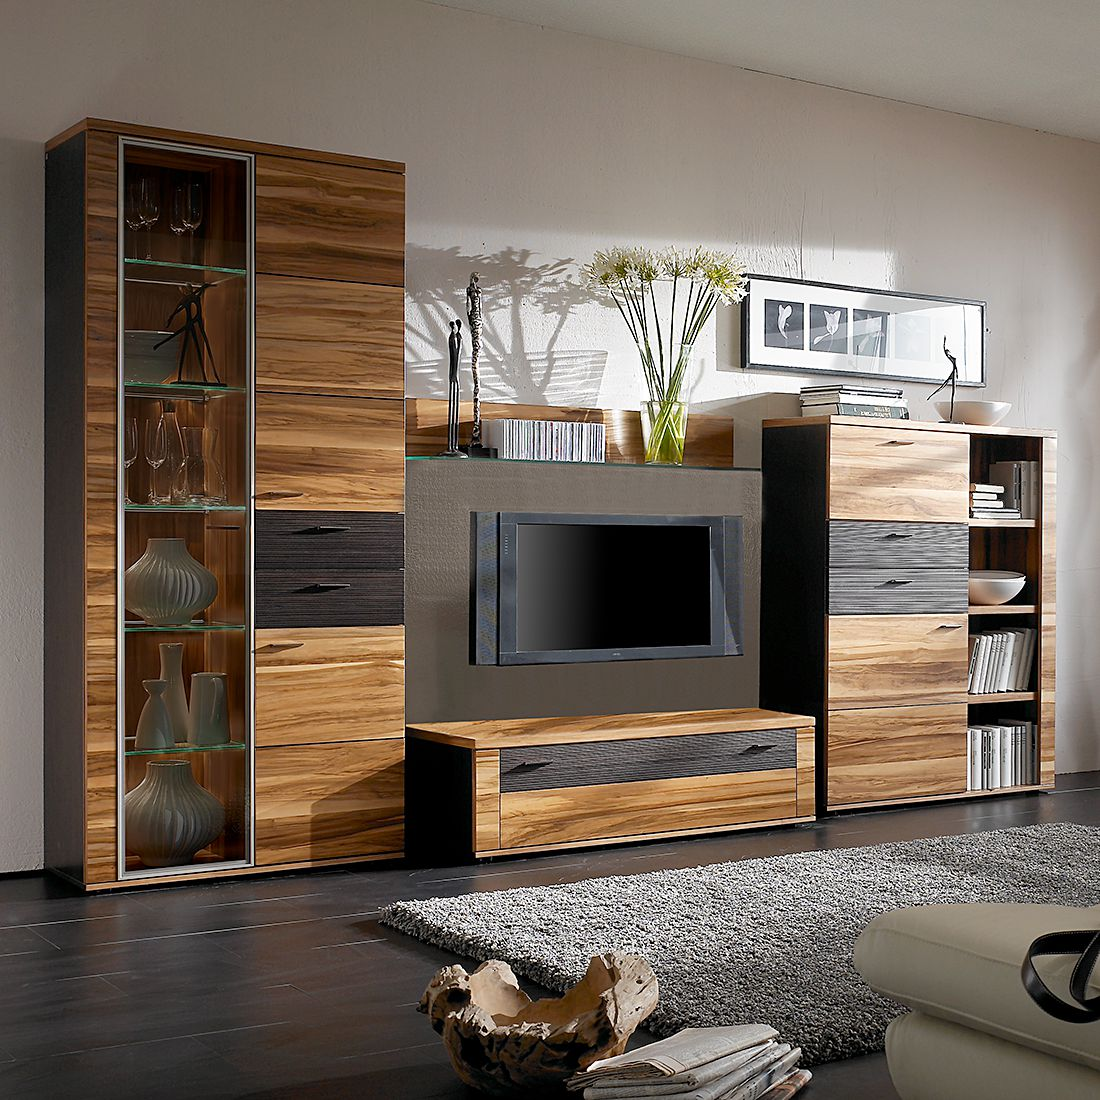 wohnwnde massivholz gnstig best mbel boer coesfeld rume wohnzimmer schrnke wohnwnde wildeiche. Black Bedroom Furniture Sets. Home Design Ideas